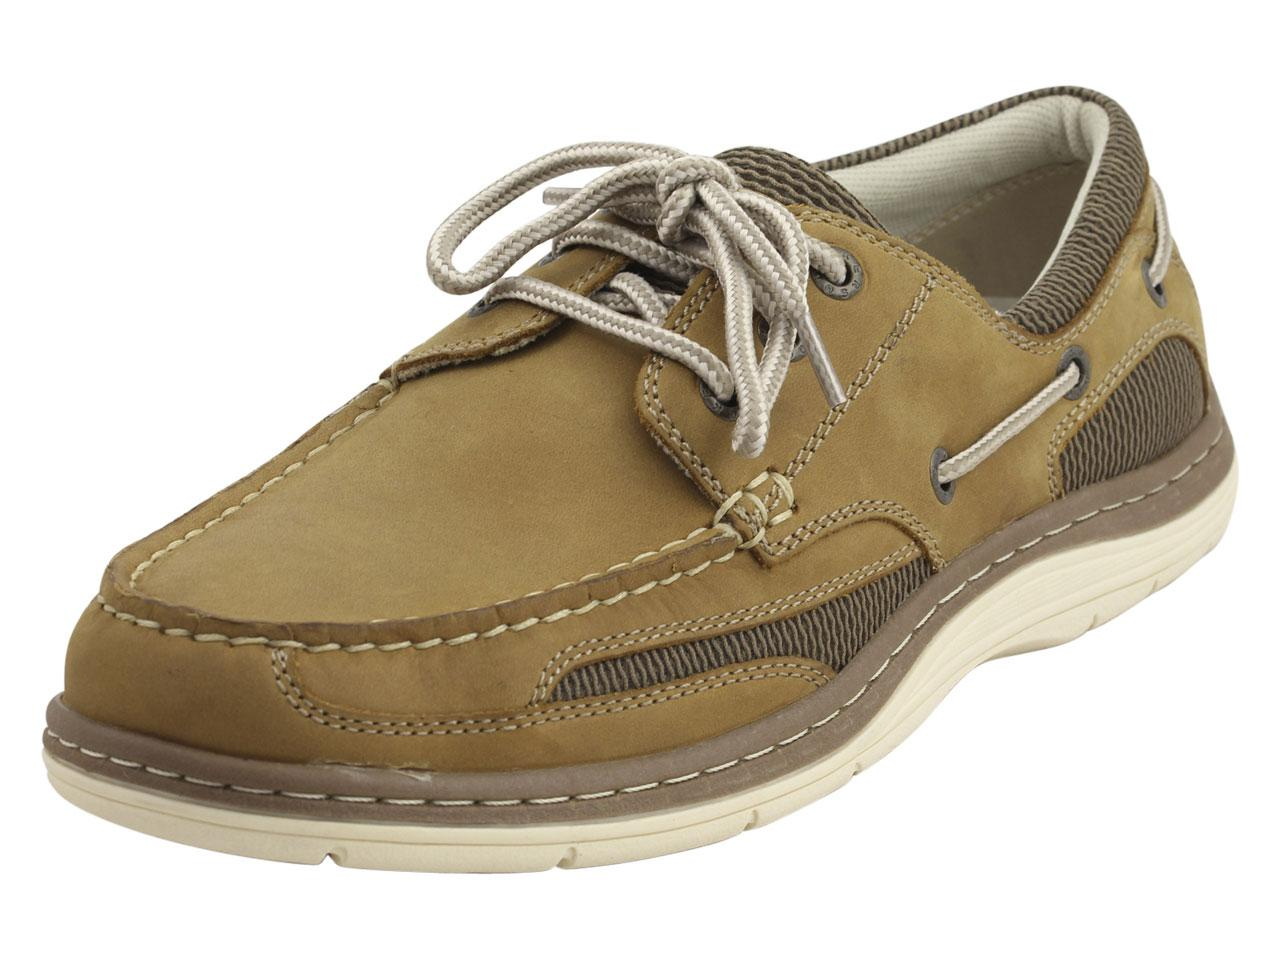 Image of Dockers Men's Lakeport Memory Foam Loafers Boat Shoes - Brown - 8 D(M) US